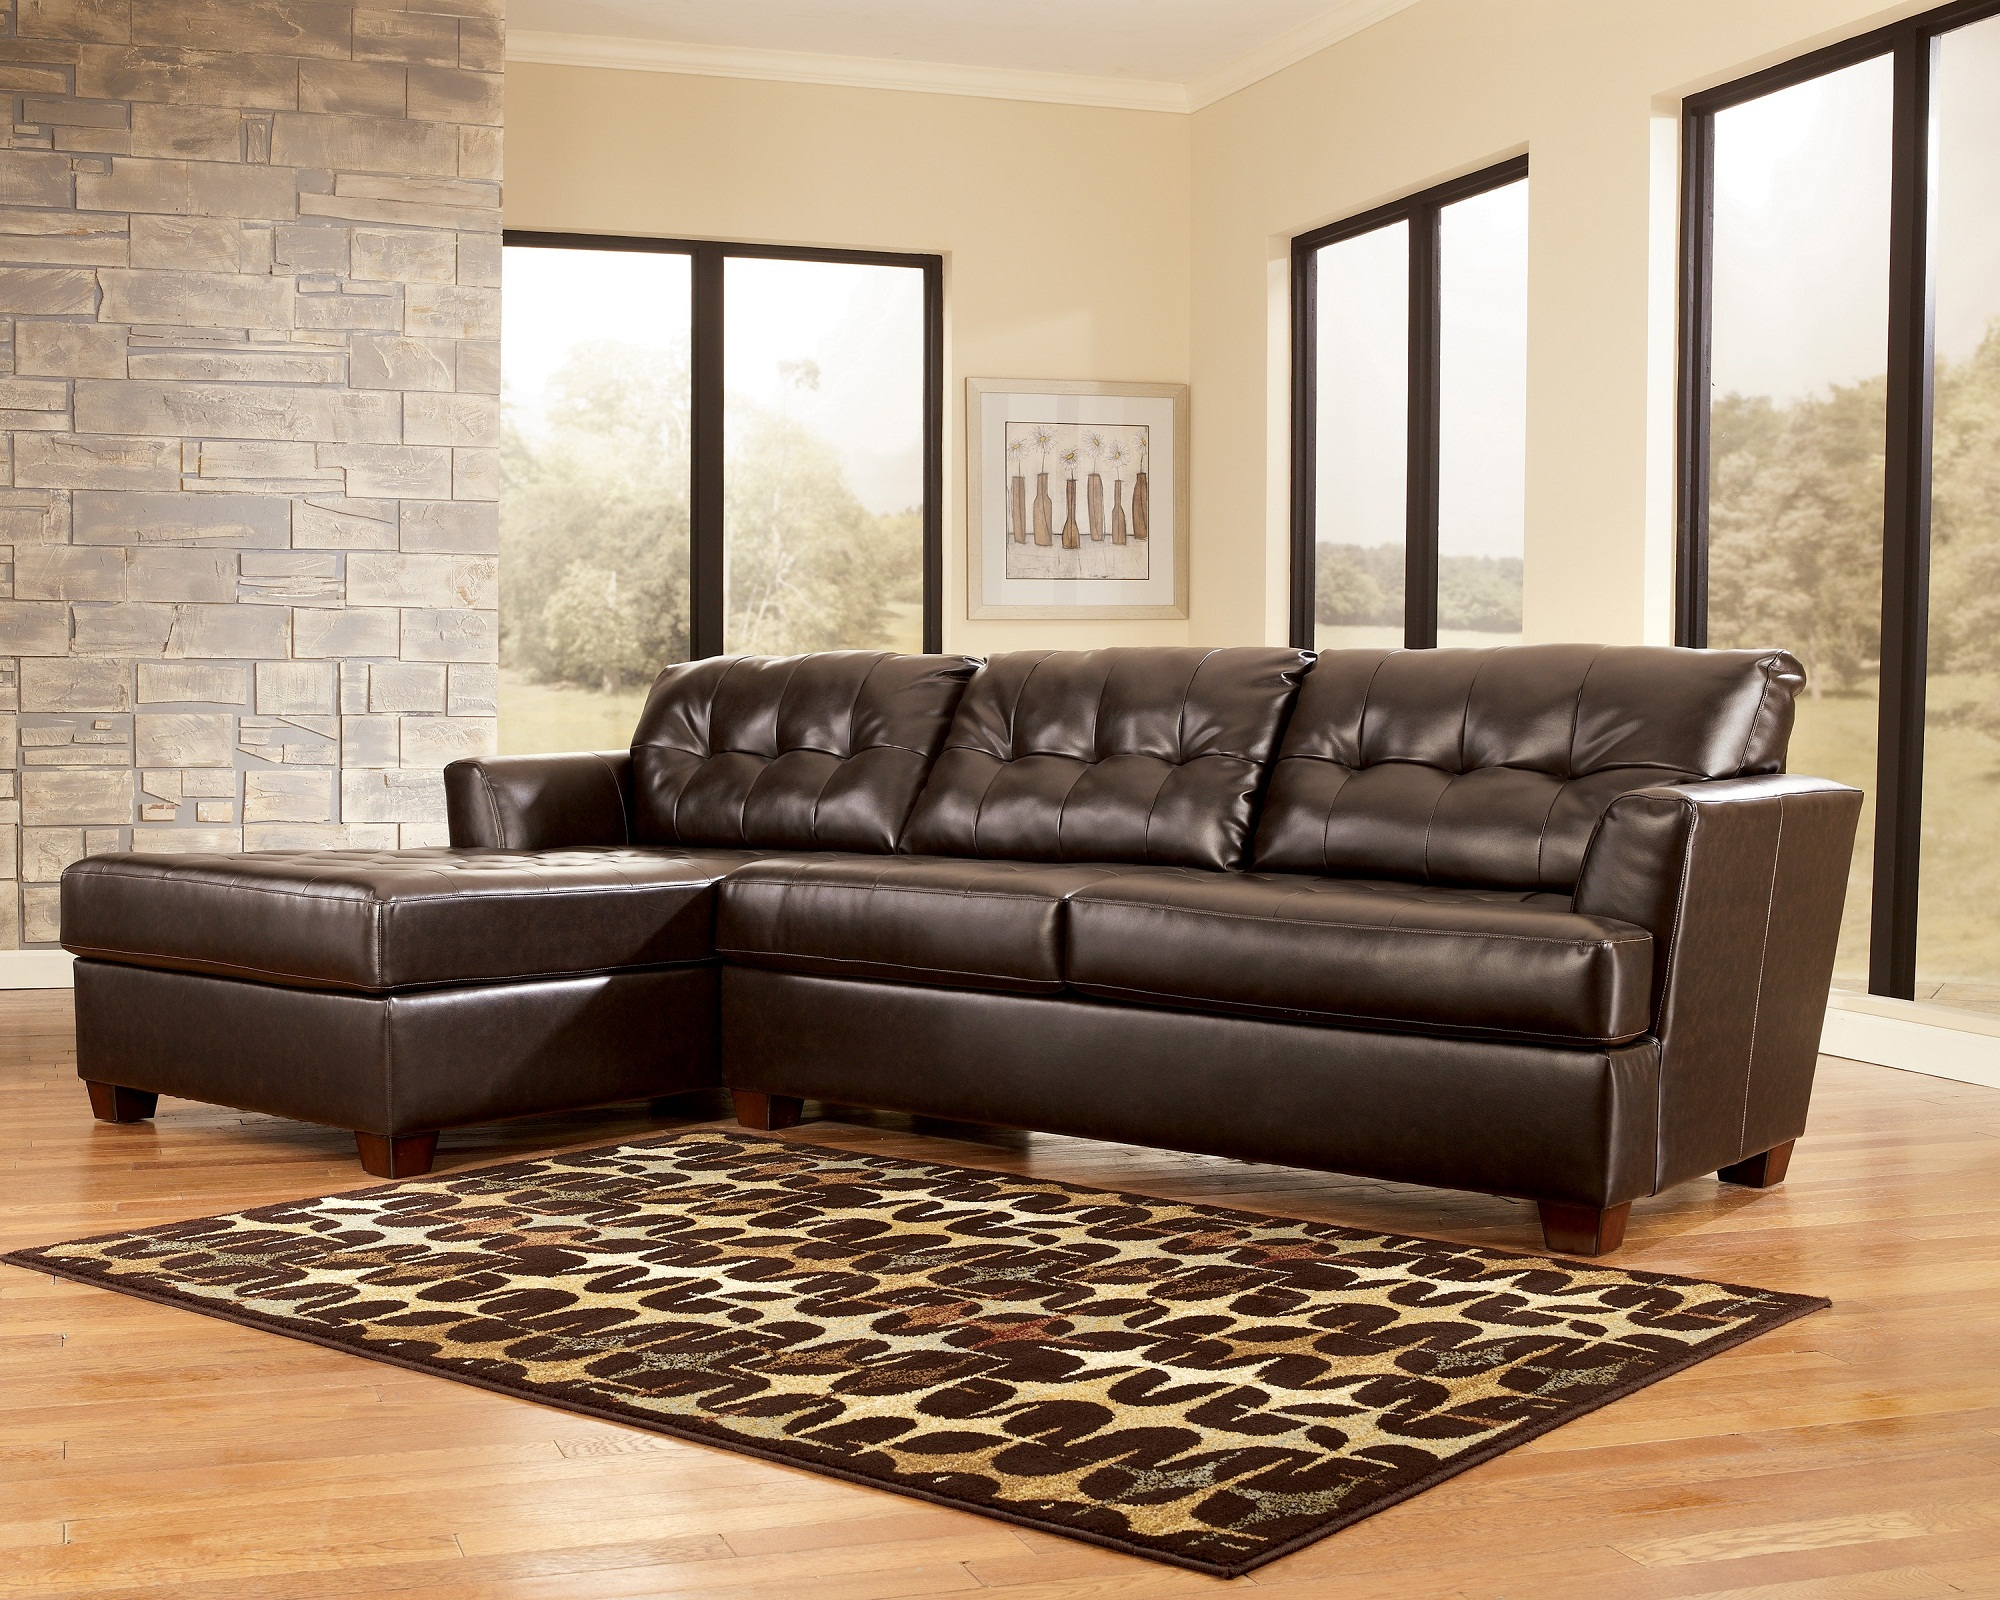 Inspiring Leather Sleeper Sofa For Furnishing Our Living